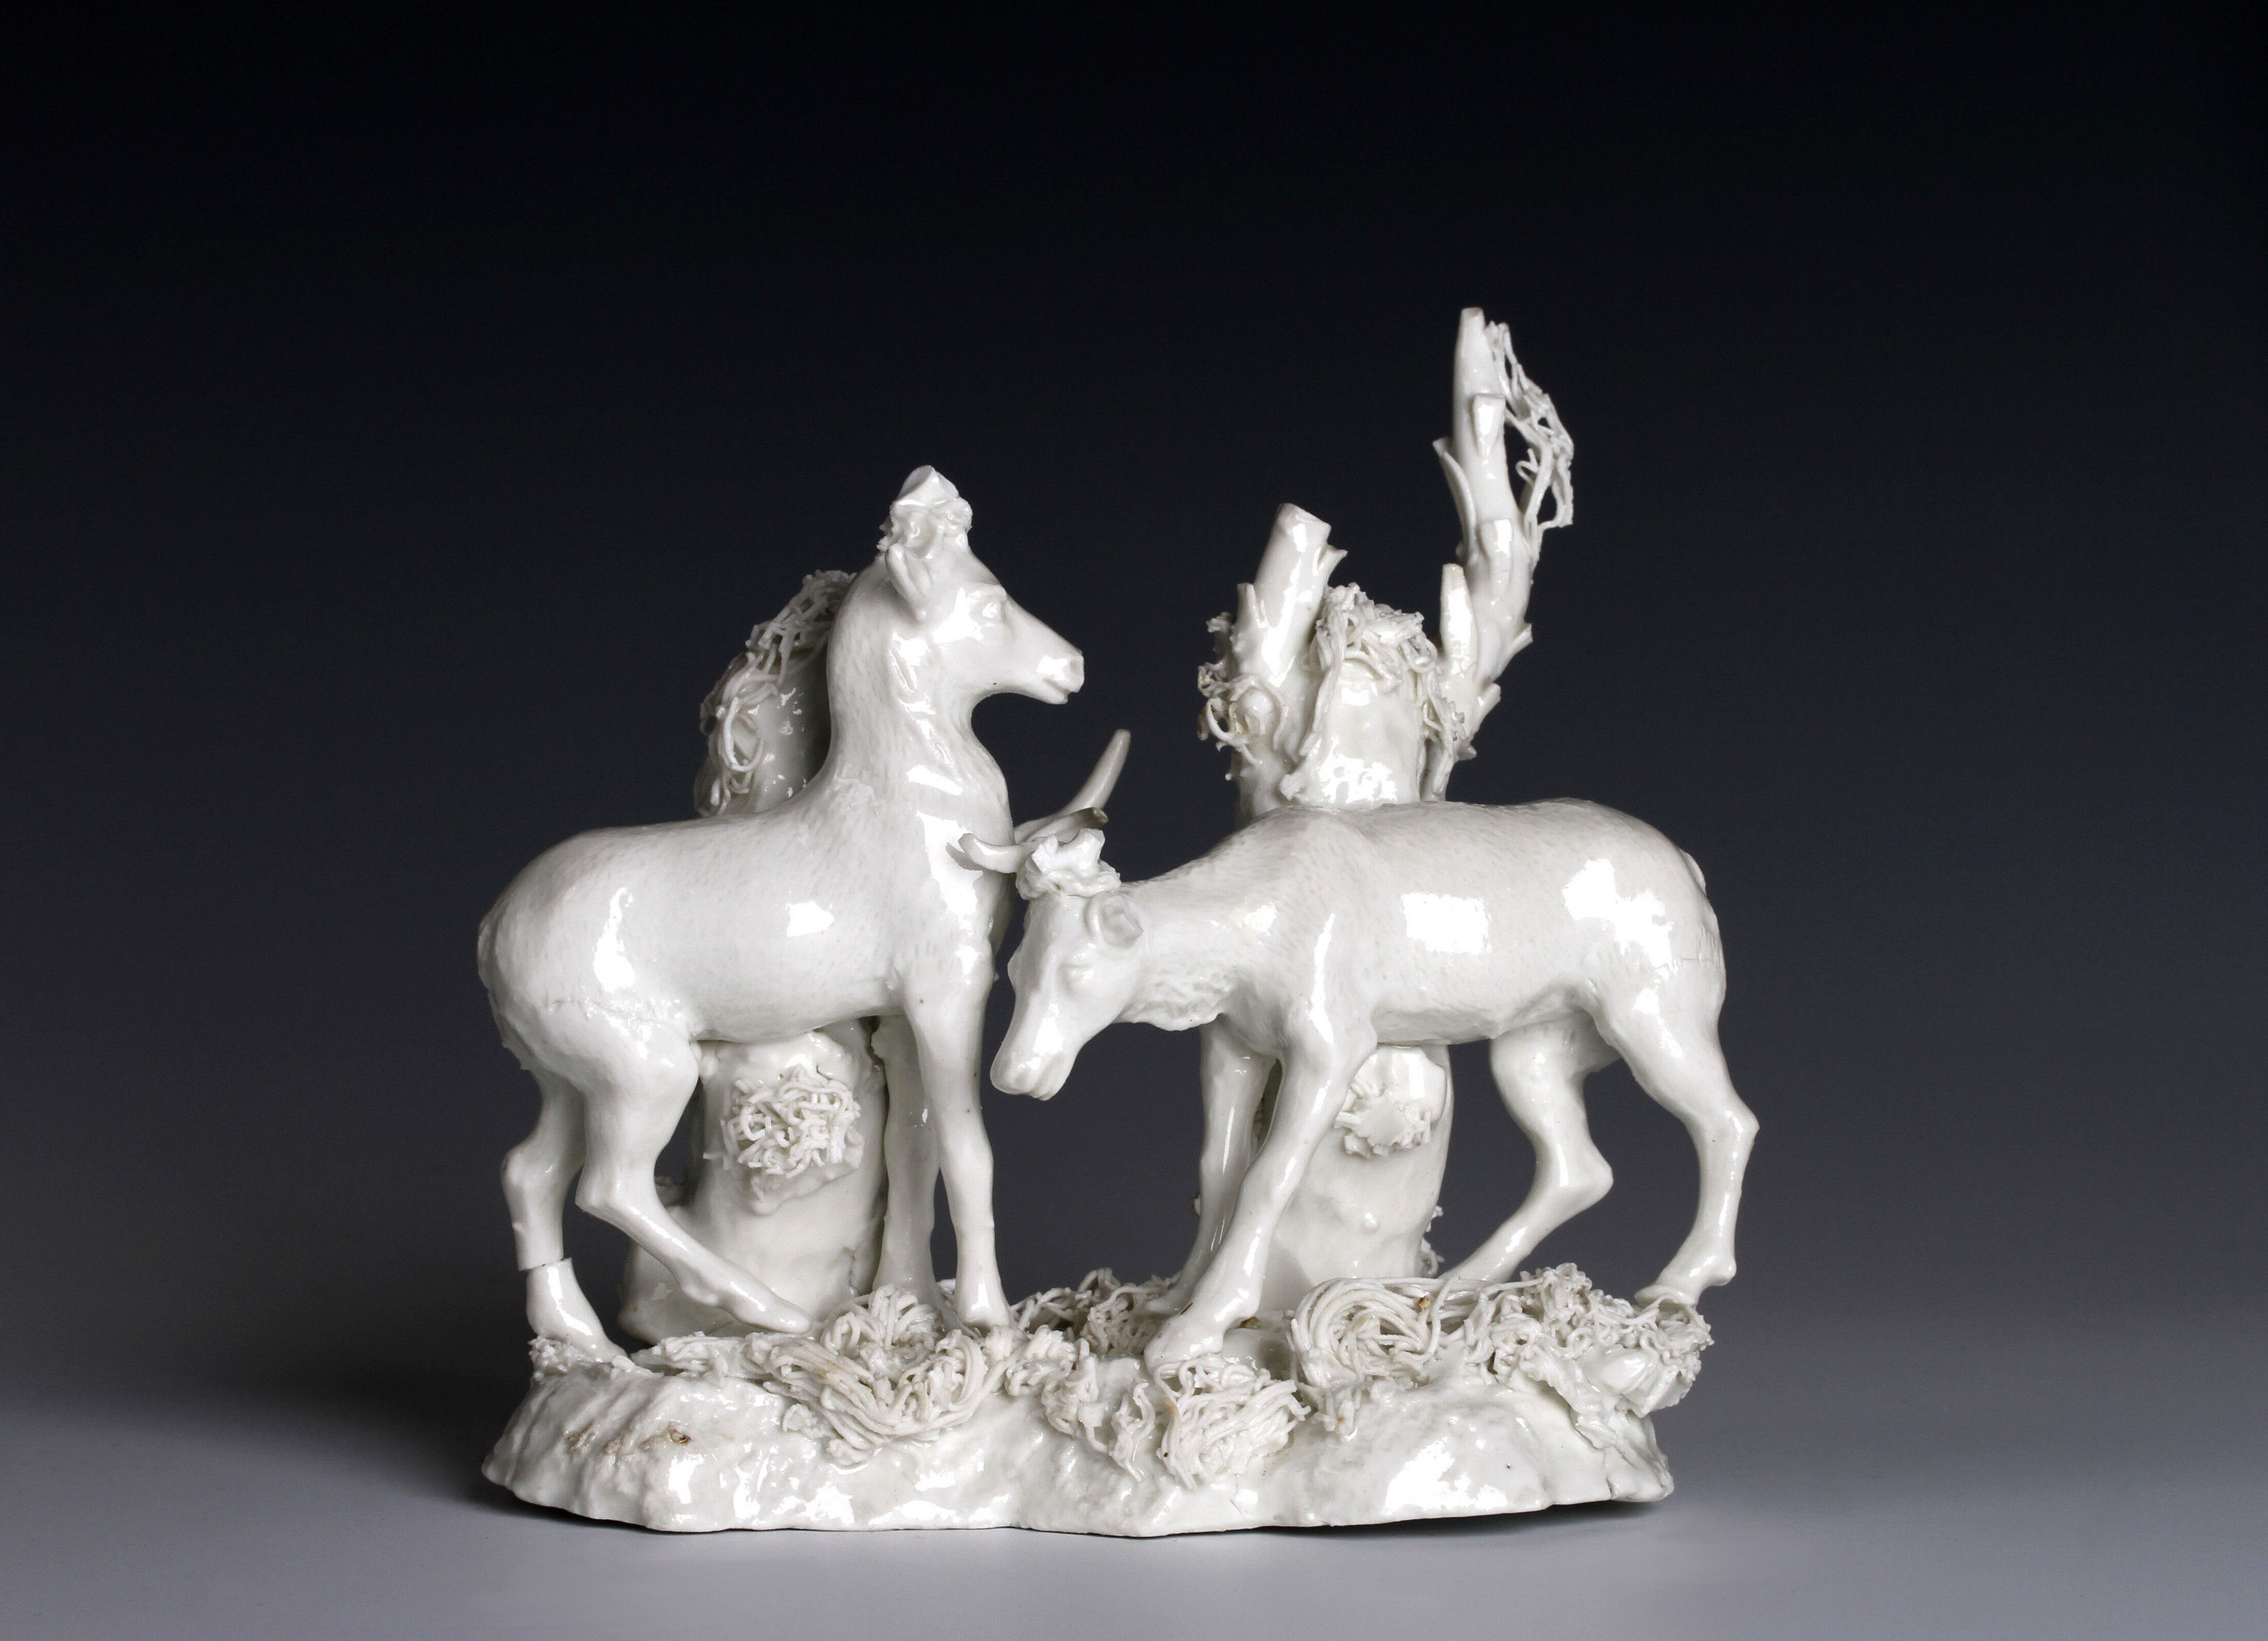 Würzburg Porcelain white group of two deer